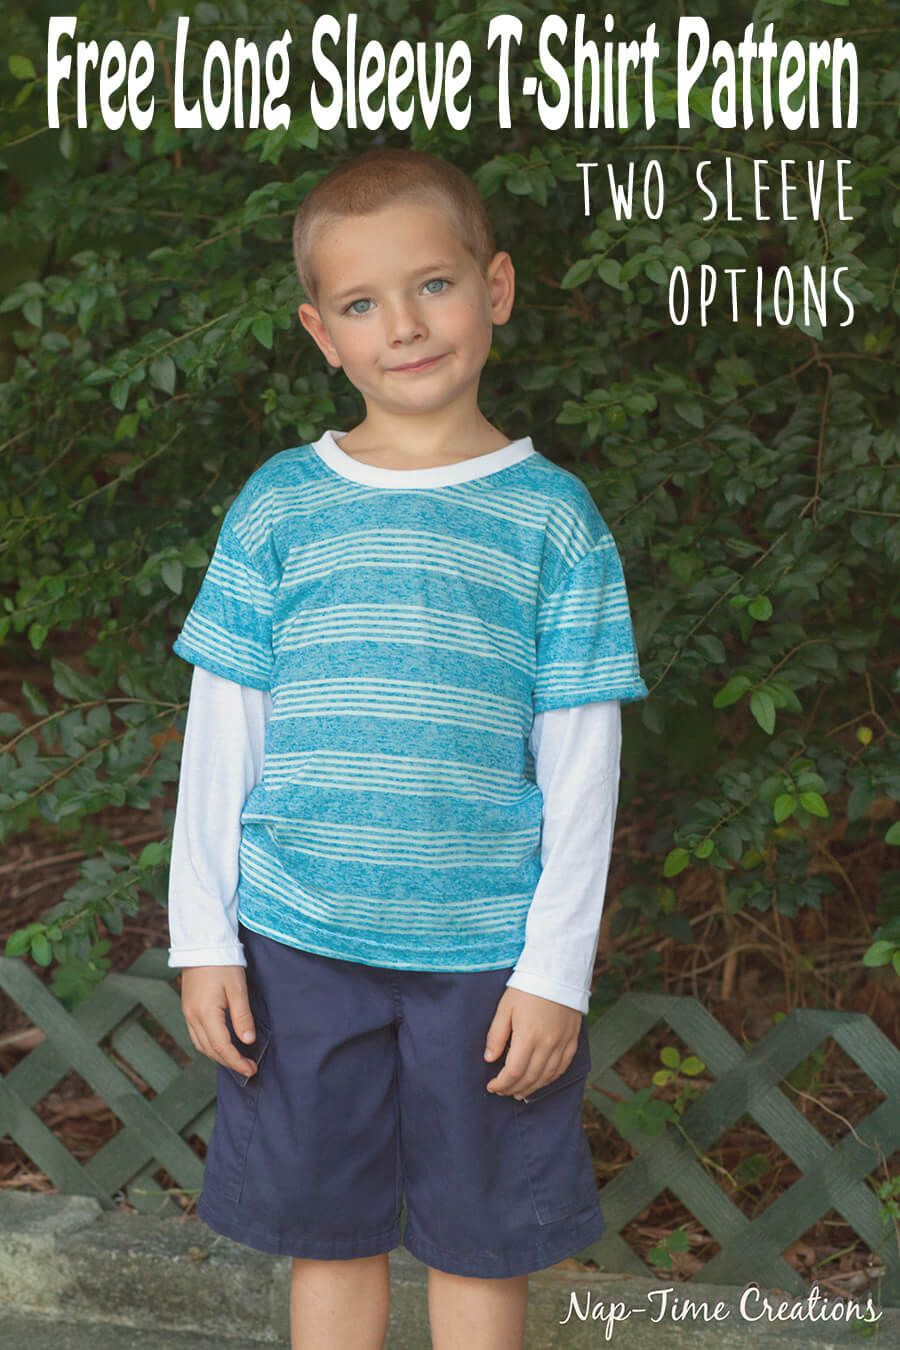 Boys Long Sleeve T-Shirt Free Pattern from Nap-Time Creations | Free ...